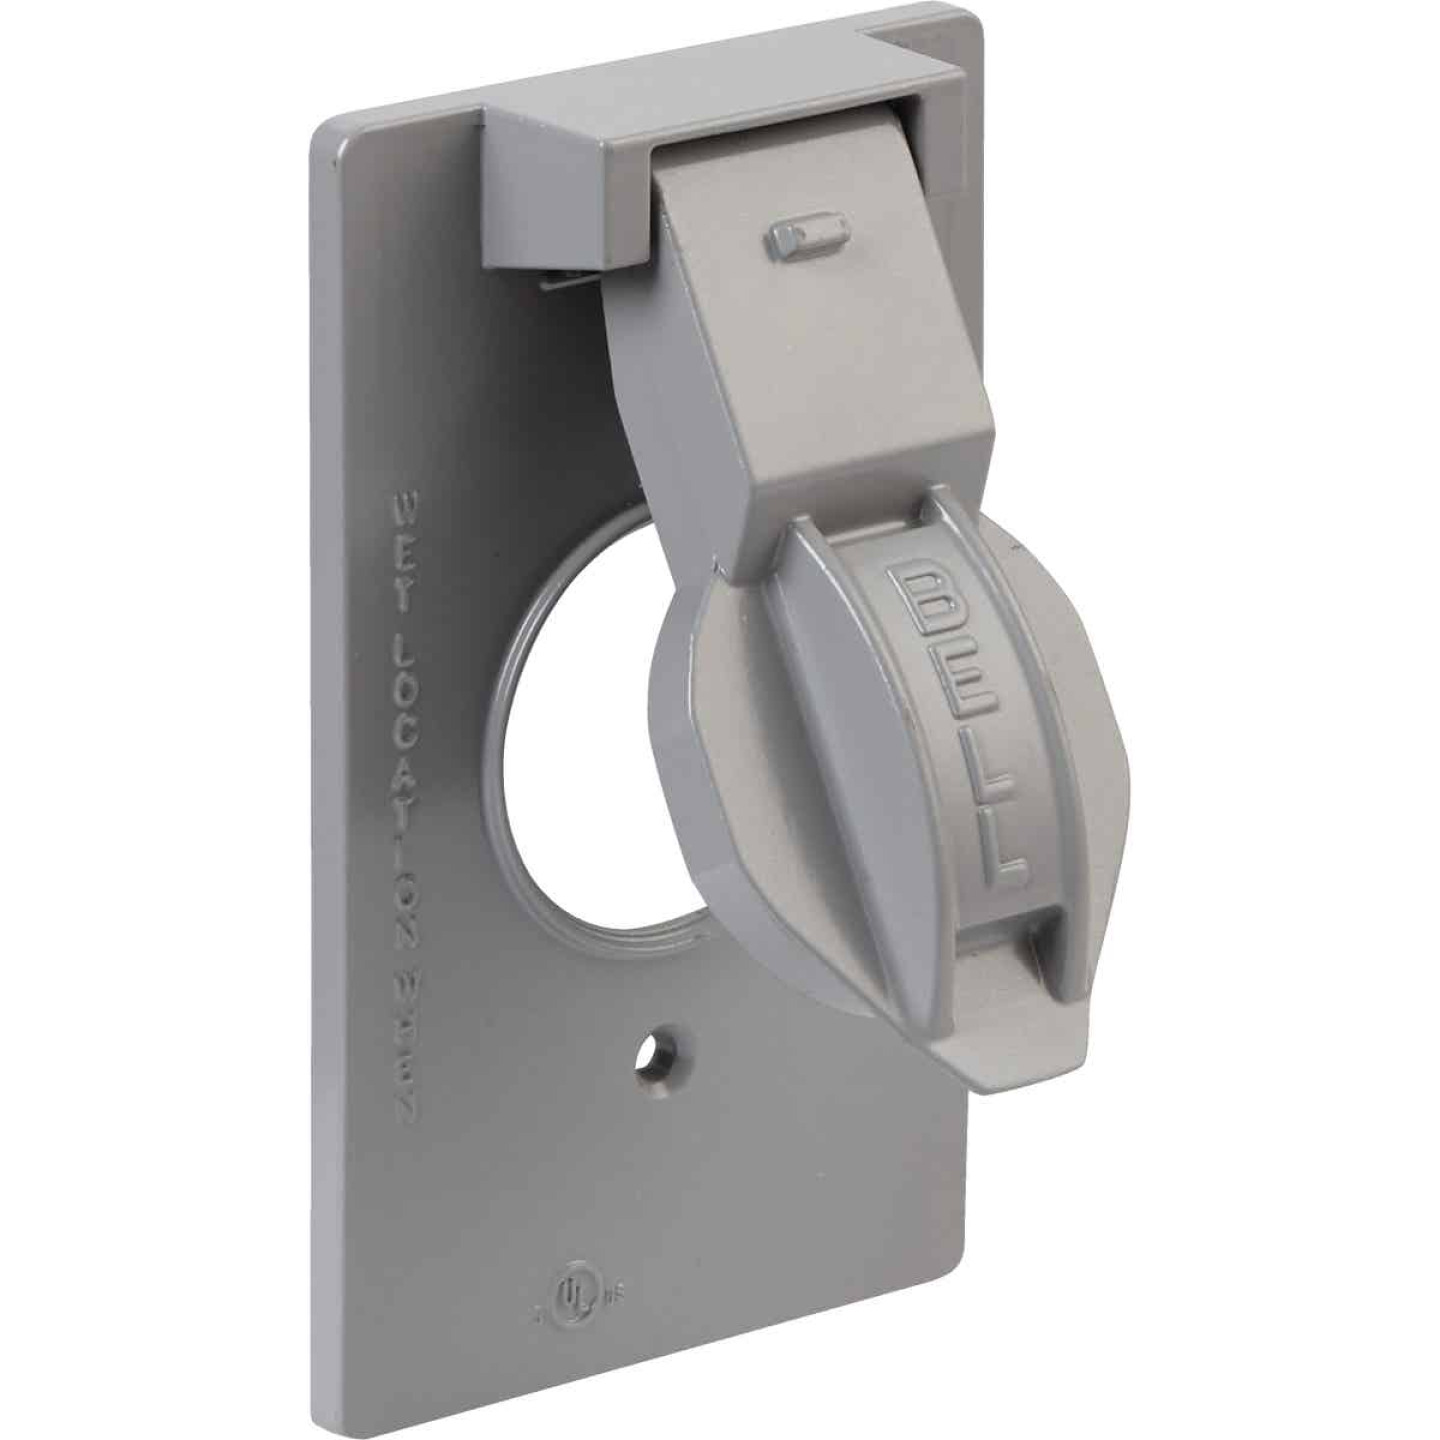 Bell Single Gang Vertical Mount Die-Cast Metal Gray Weatherproof Outdoor Outlet Cover, Shrink Wrapped Image 1